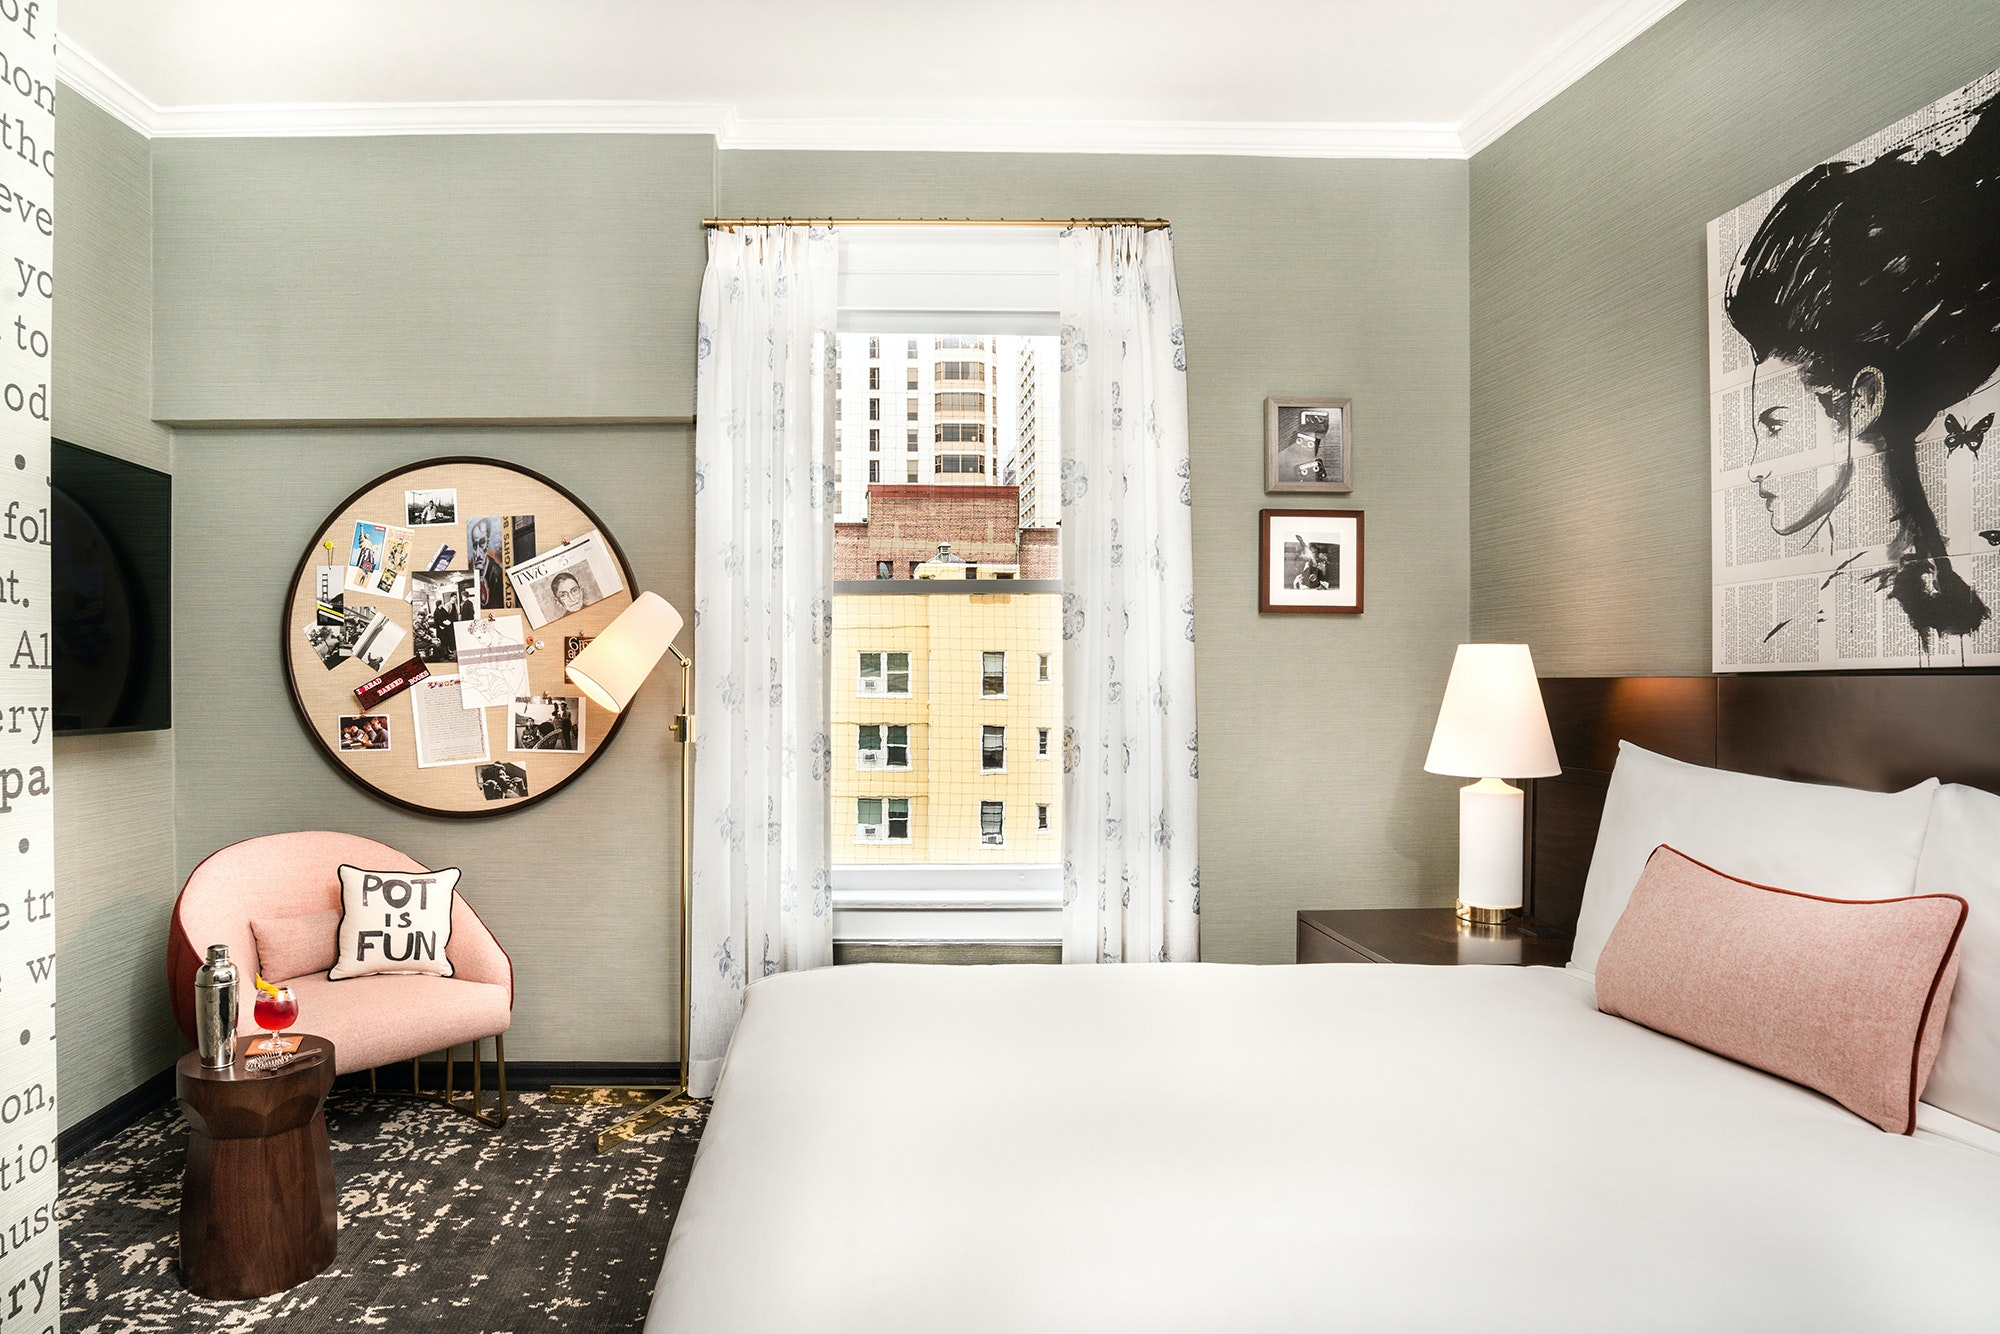 A deluxe queen room at the new Hotel Emblem.